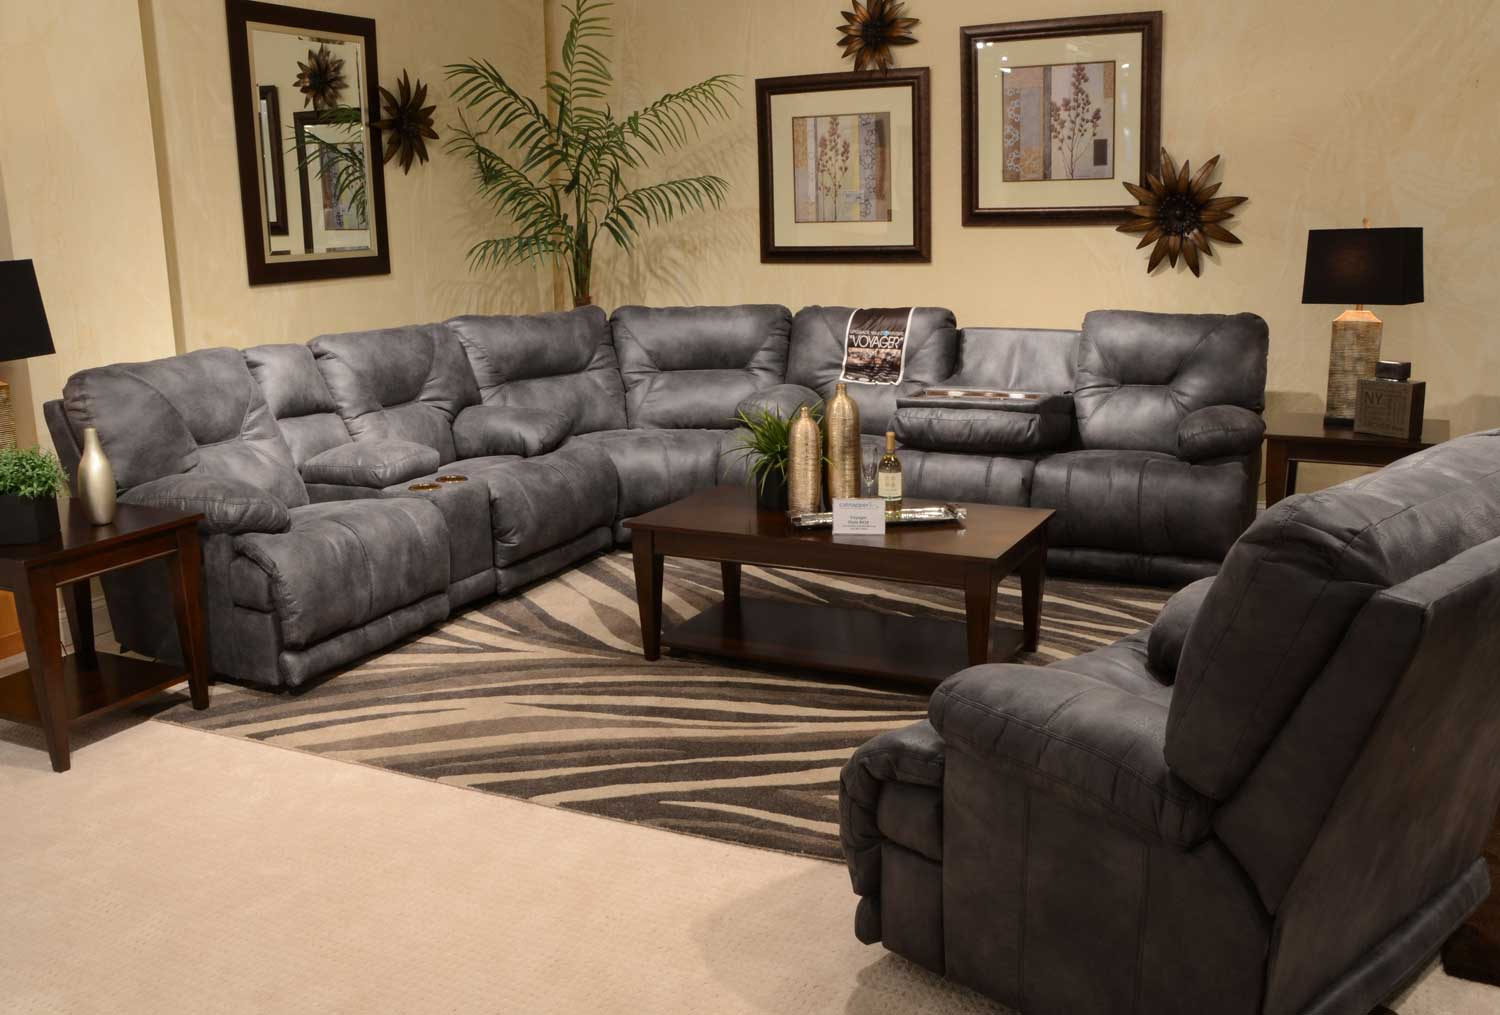 catnapper sofas and loveseats contemporary sectional for small spaces voyager with lay flat 3 recliner sofa console loveseat wedge slate cn 43845 sect set at homelement com